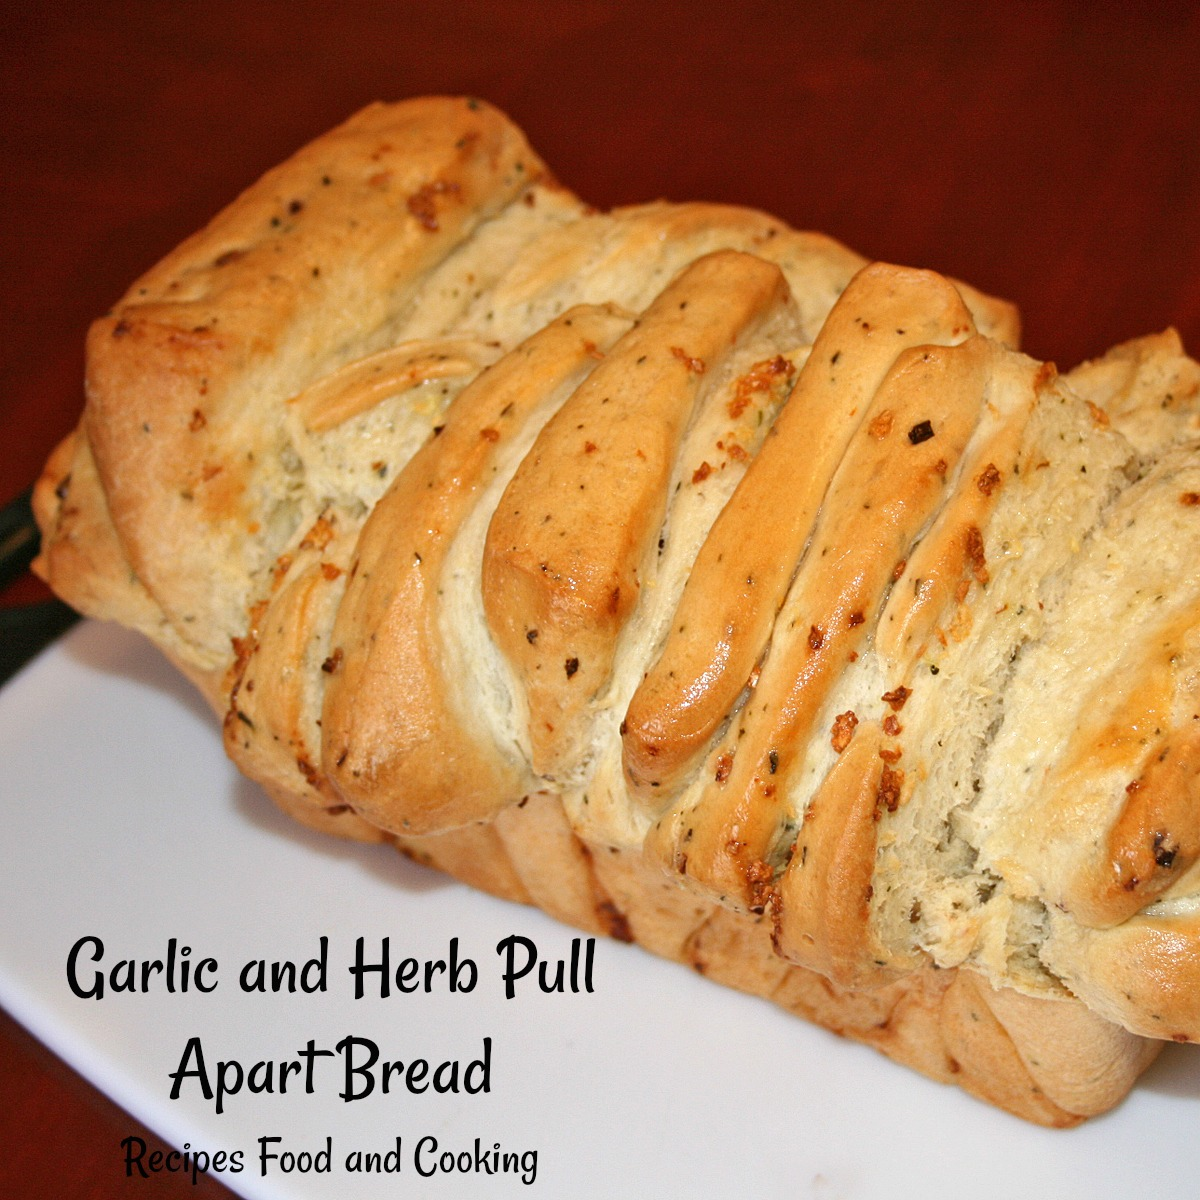 Garlic and Herb Pull Apart Bread